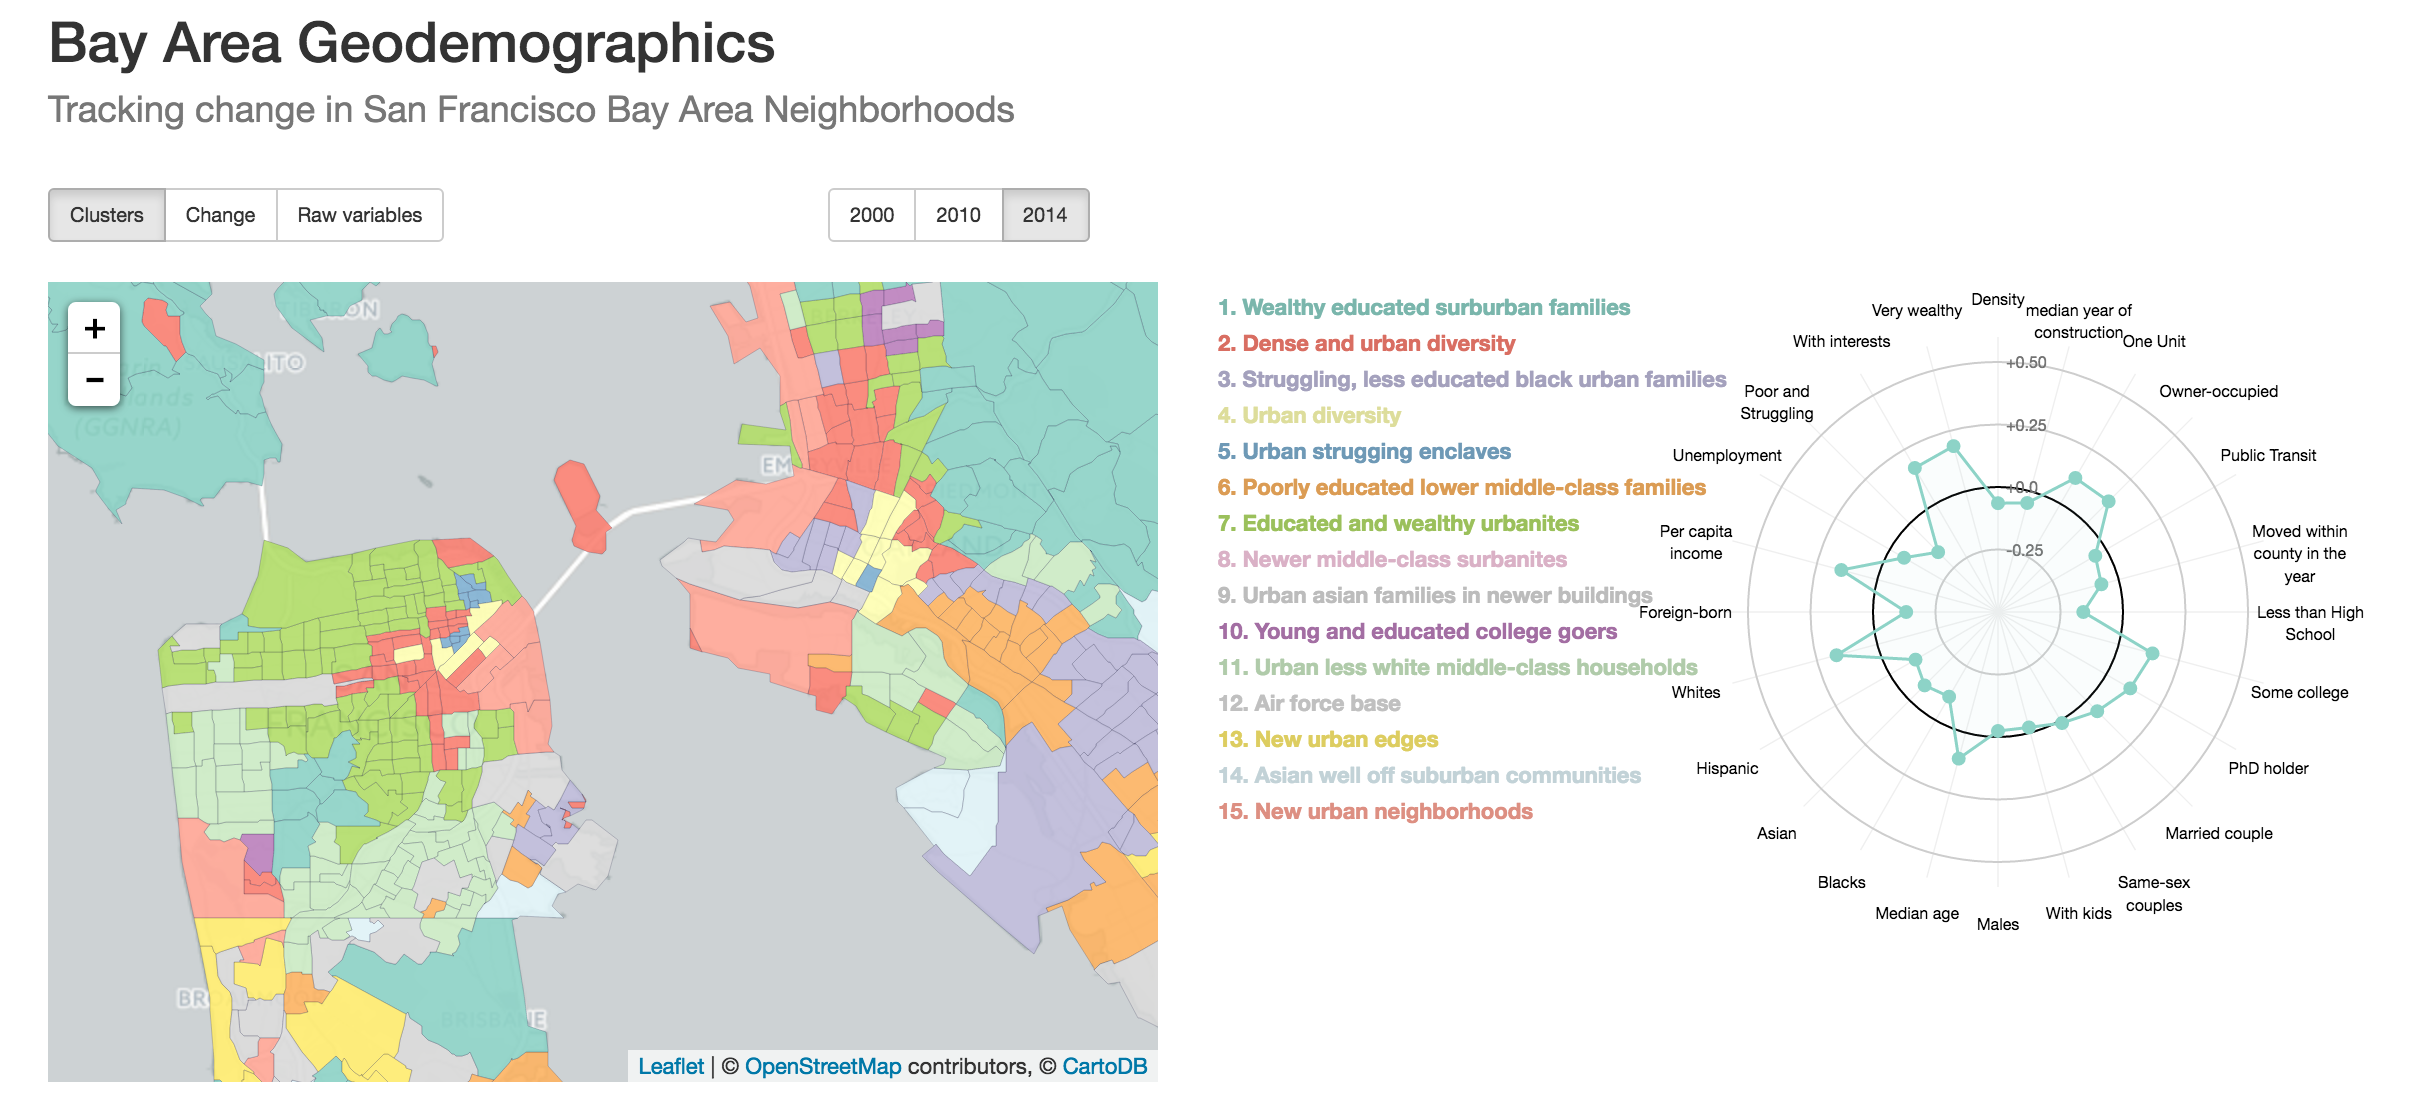 Map of a classification of neighborhoods in the Bay Area using hierarchical clustering based on a many variables like age, income, race, activities.